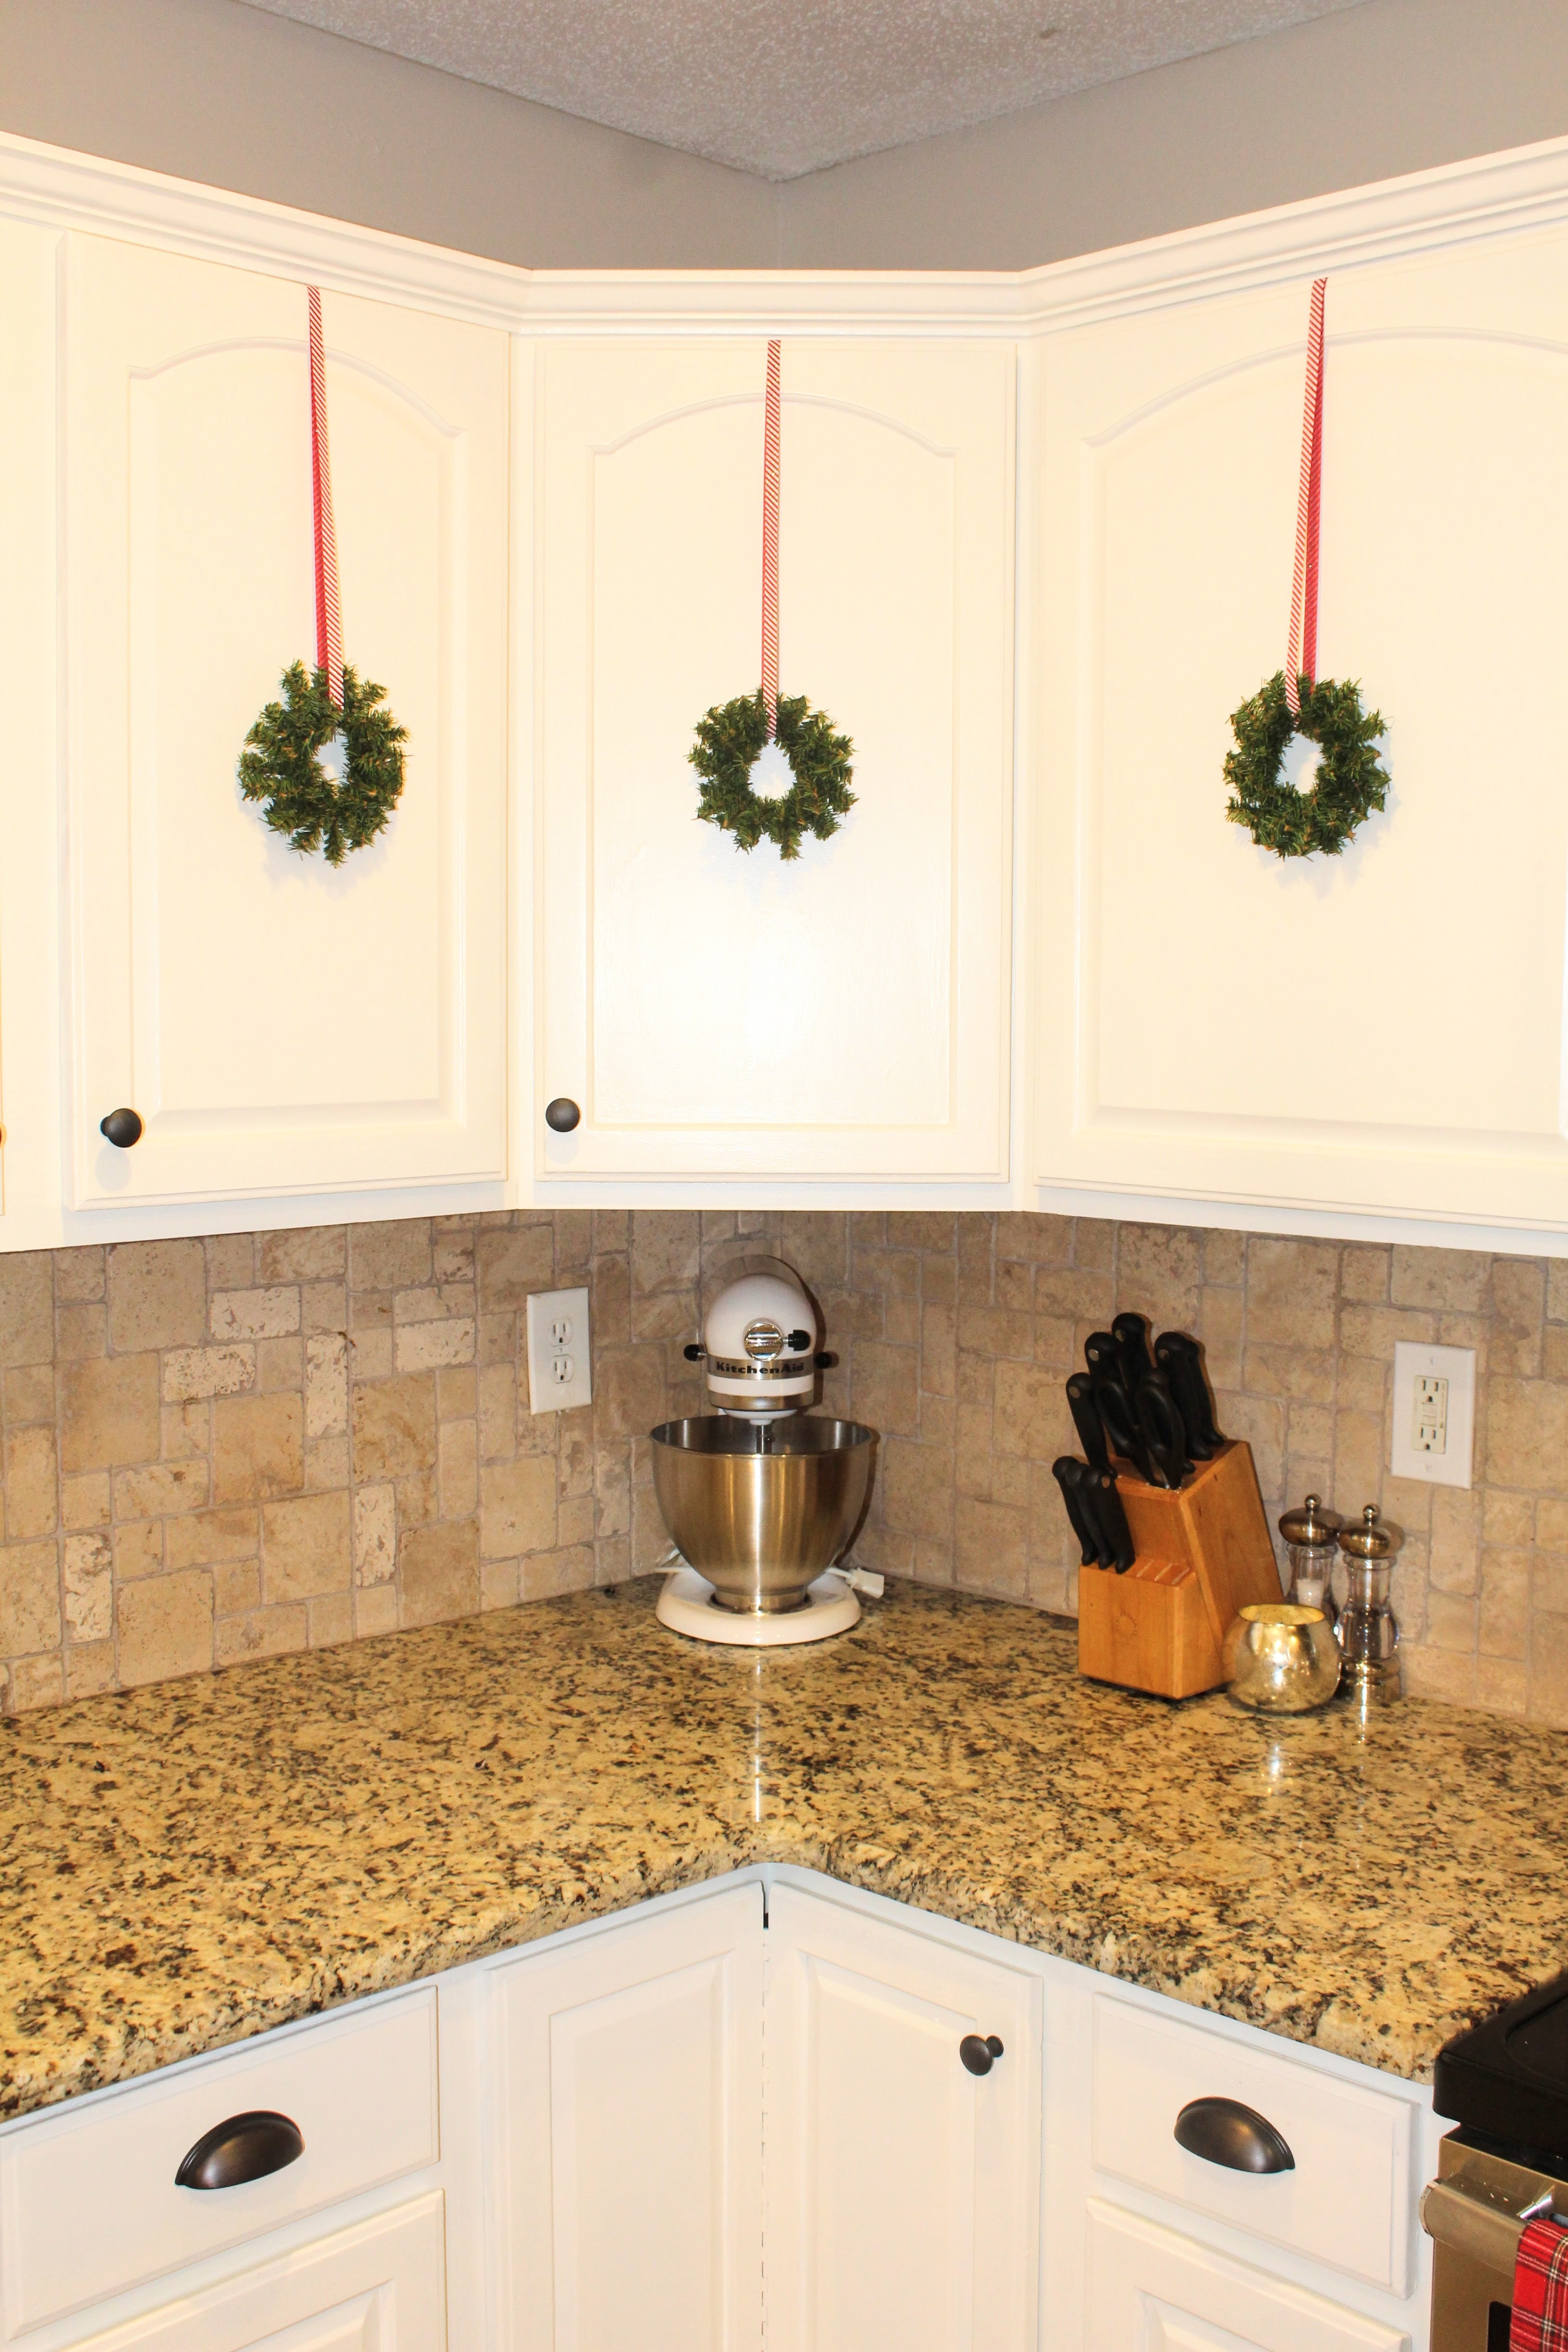 Festive Holiday Kitchen Cabinet Wreaths Diy Project